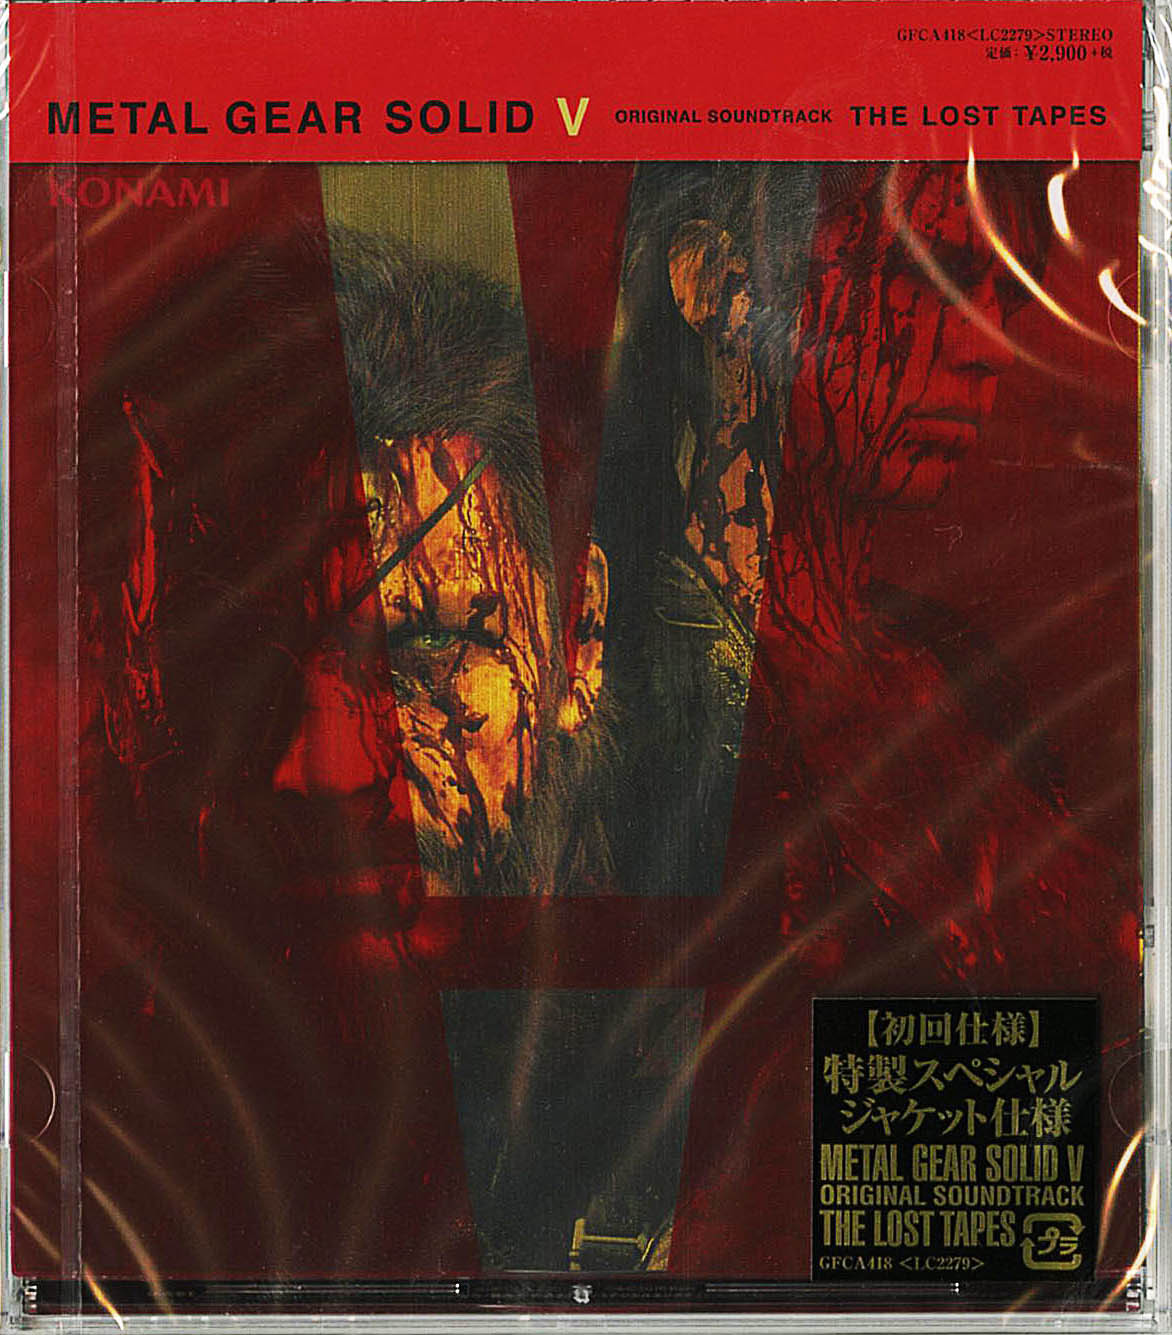 Metal Gear Solid V Original Soundtrack - The Lost Tapes